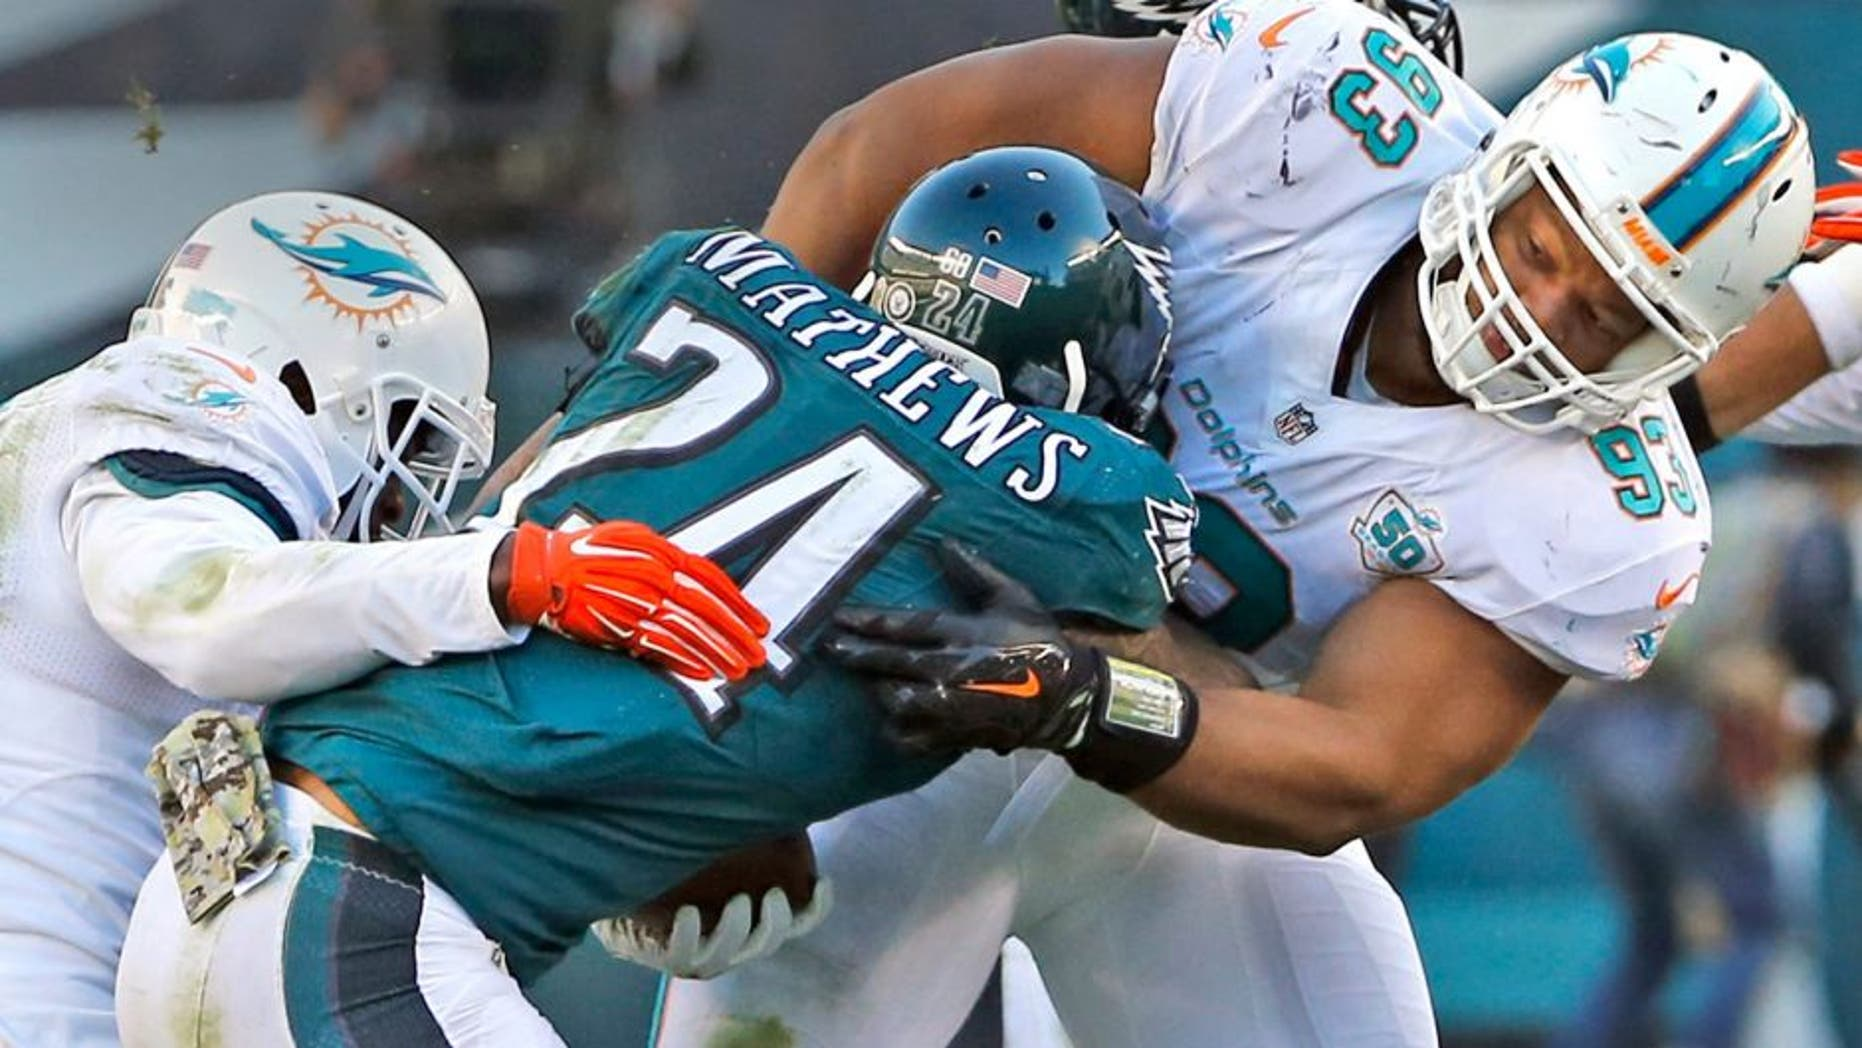 Miami Dolphins' Reshad Jones and Ndamukong Suh tackle Philadelphia Eagles' Ryan Mathews during the third quarter on Sunday, Nov. 15, 2015, at Lincoln Financial Field in Philadelphia. (Charles Trainor Jr./Miami Herald/TNS via Getty Images)